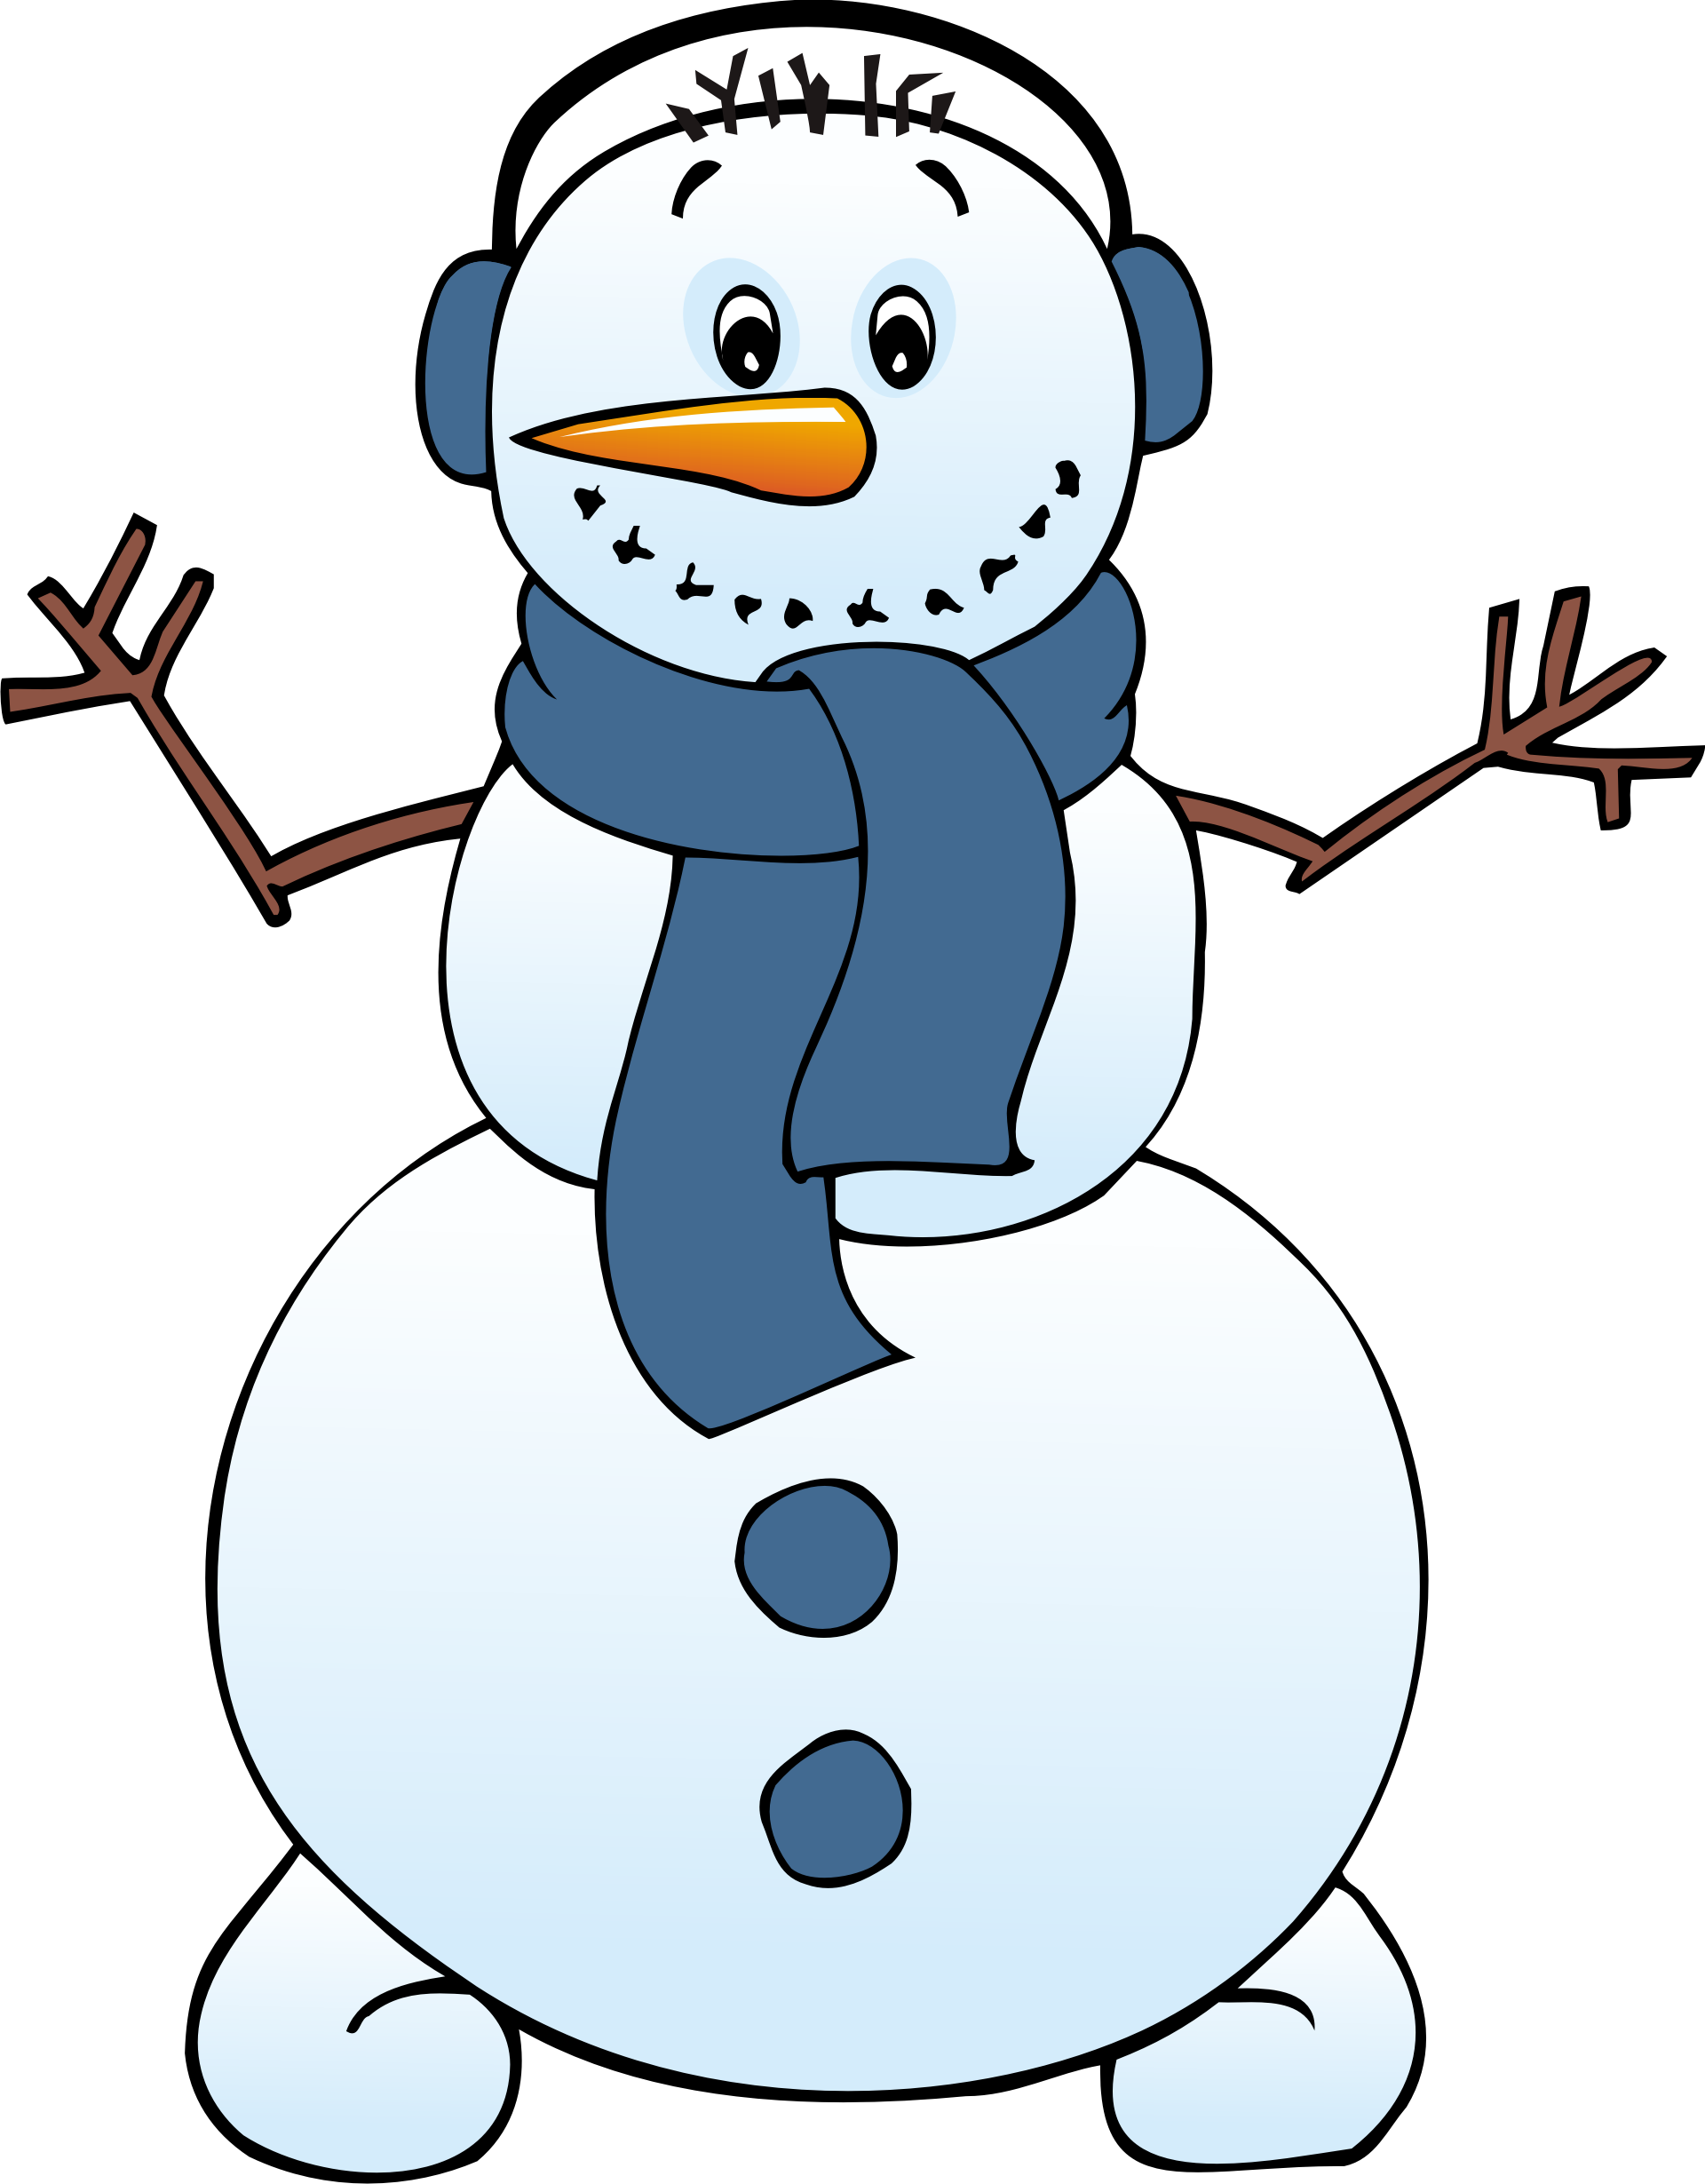 Free clipart winter image.